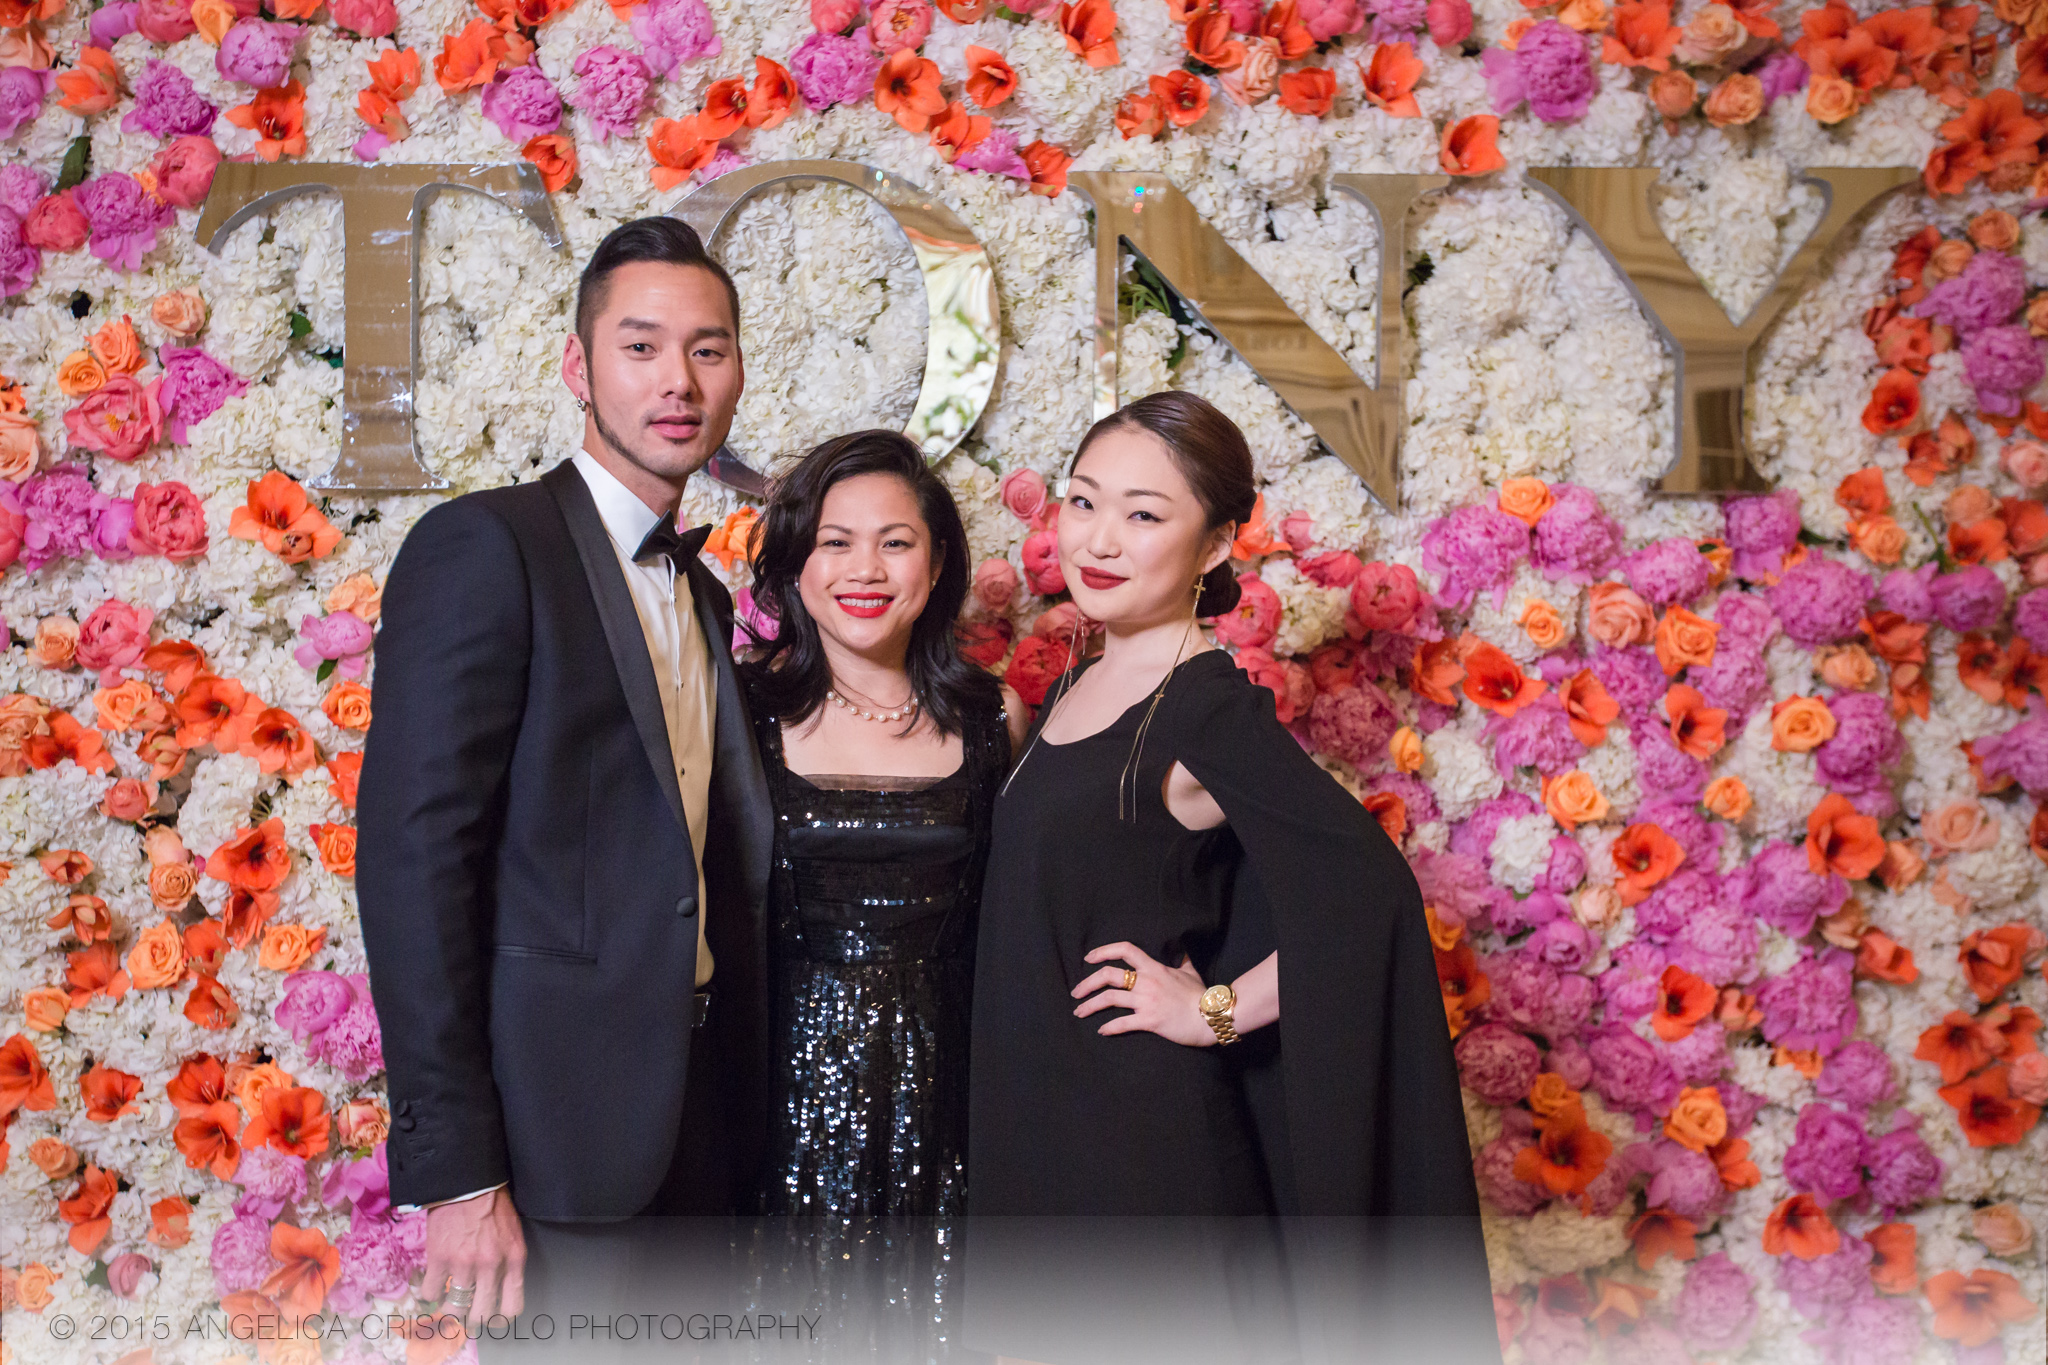 New York Tony Awards Gala Park Plaza Ivie Joy Flowers Lex Liang LDC Liz Yang